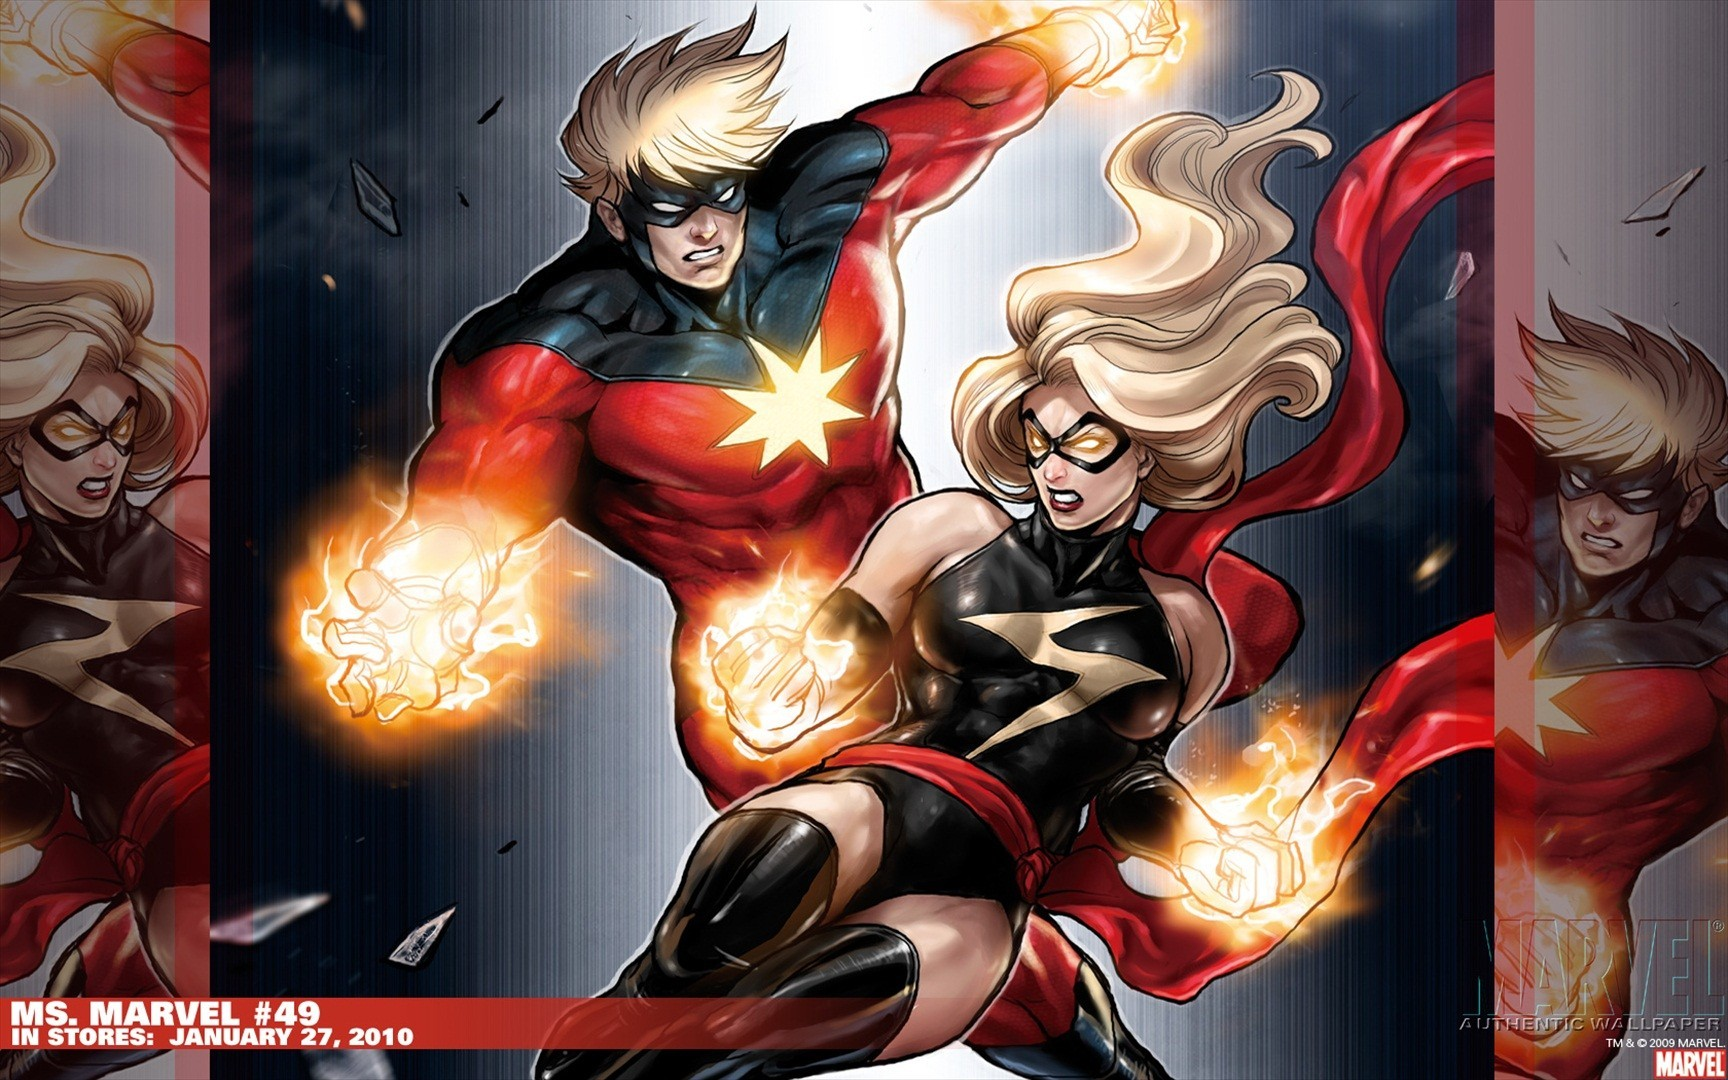 captain-marvel-comics-ms-1728x1080-wallpaper.jpg